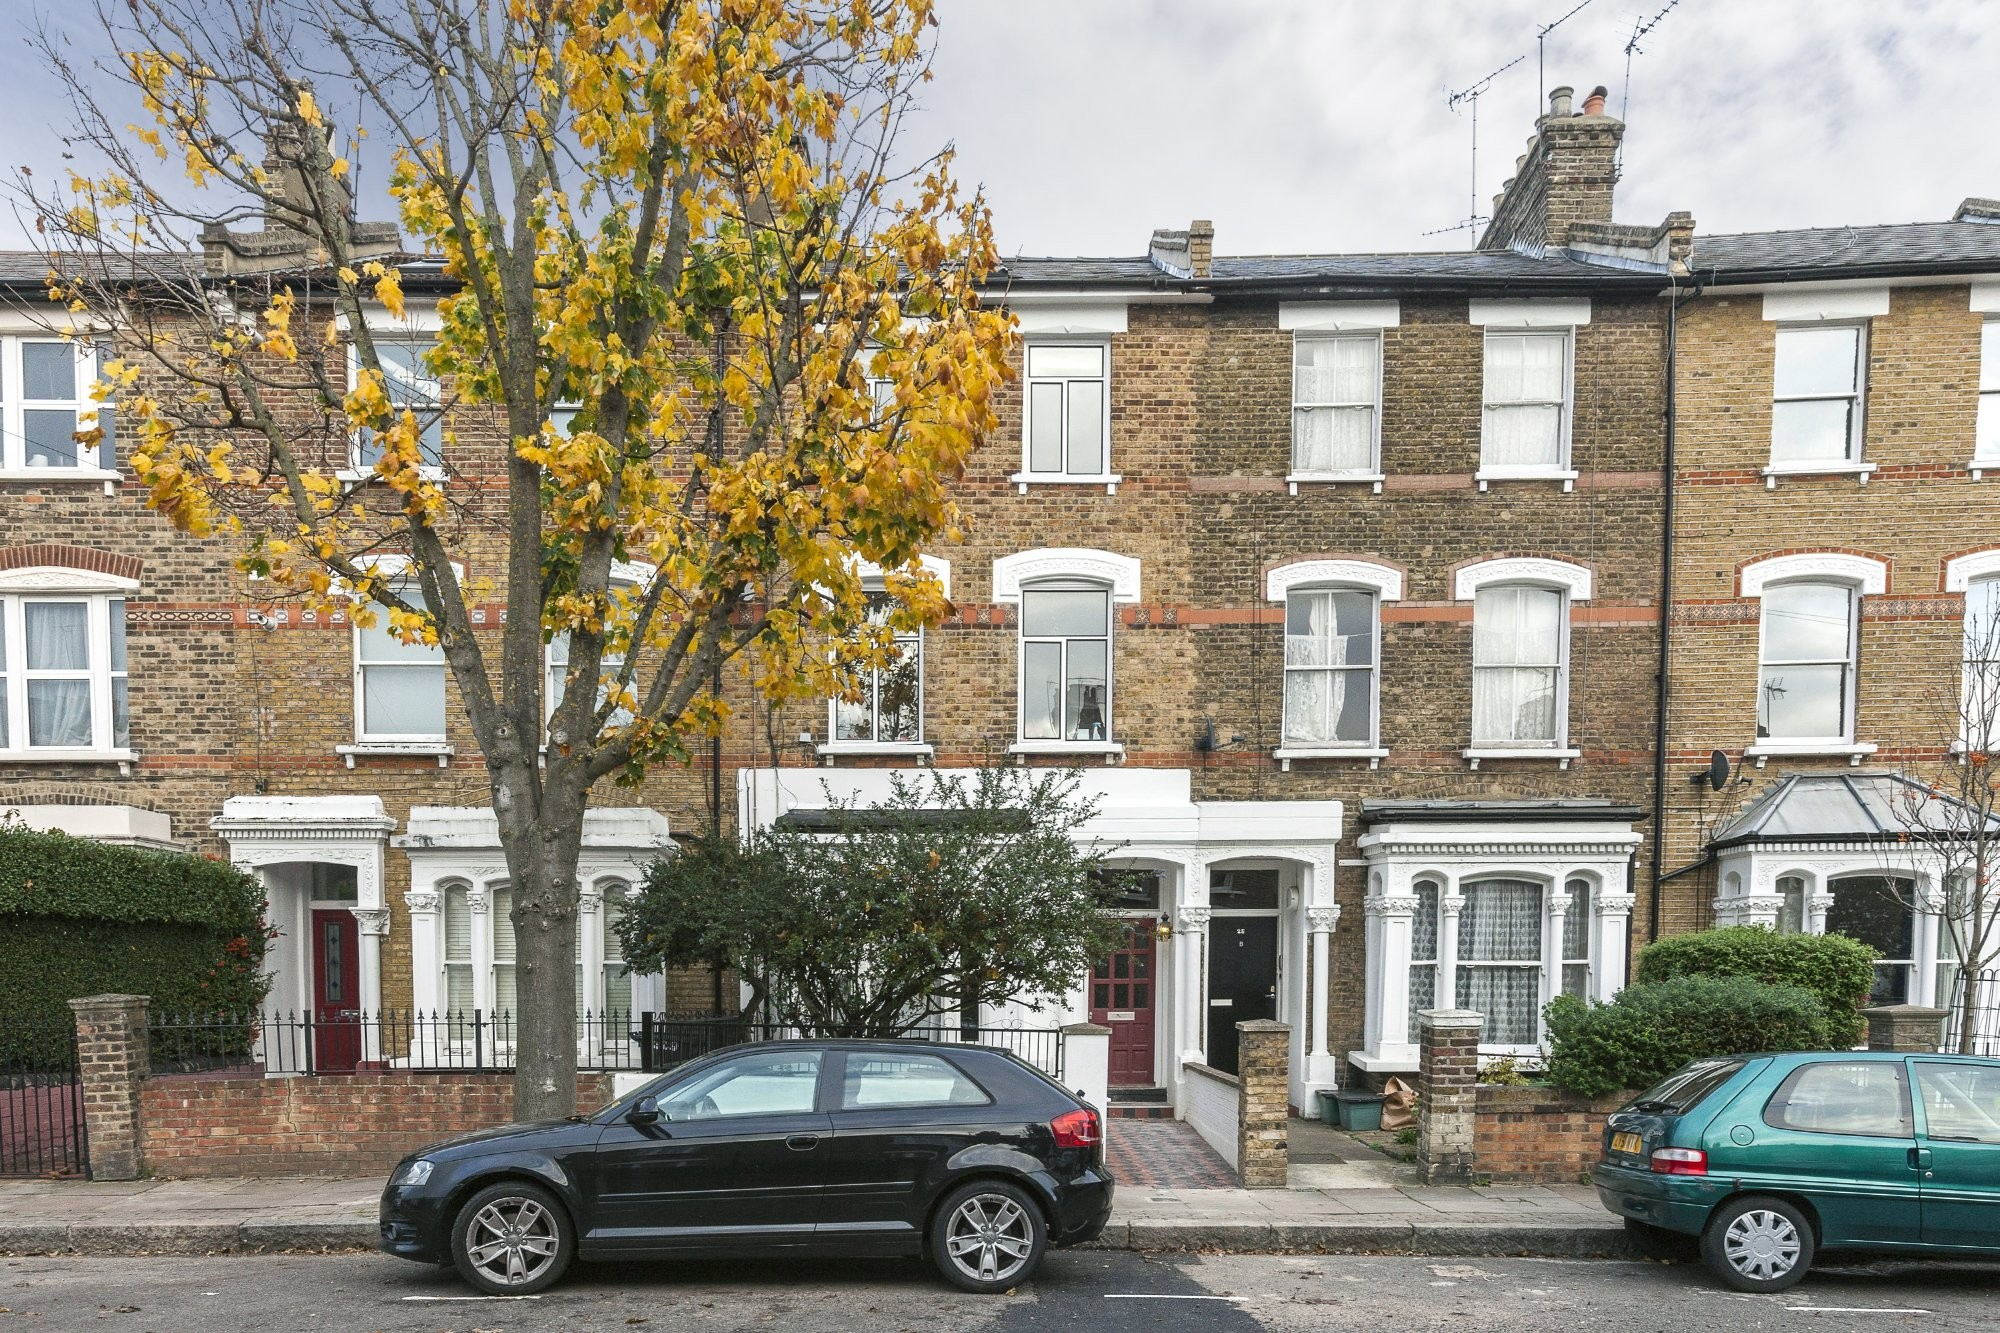 Images for Plimsoll Road, N4 2EN EAID:931013c273837aec744cf2e7889cb460 BID:3